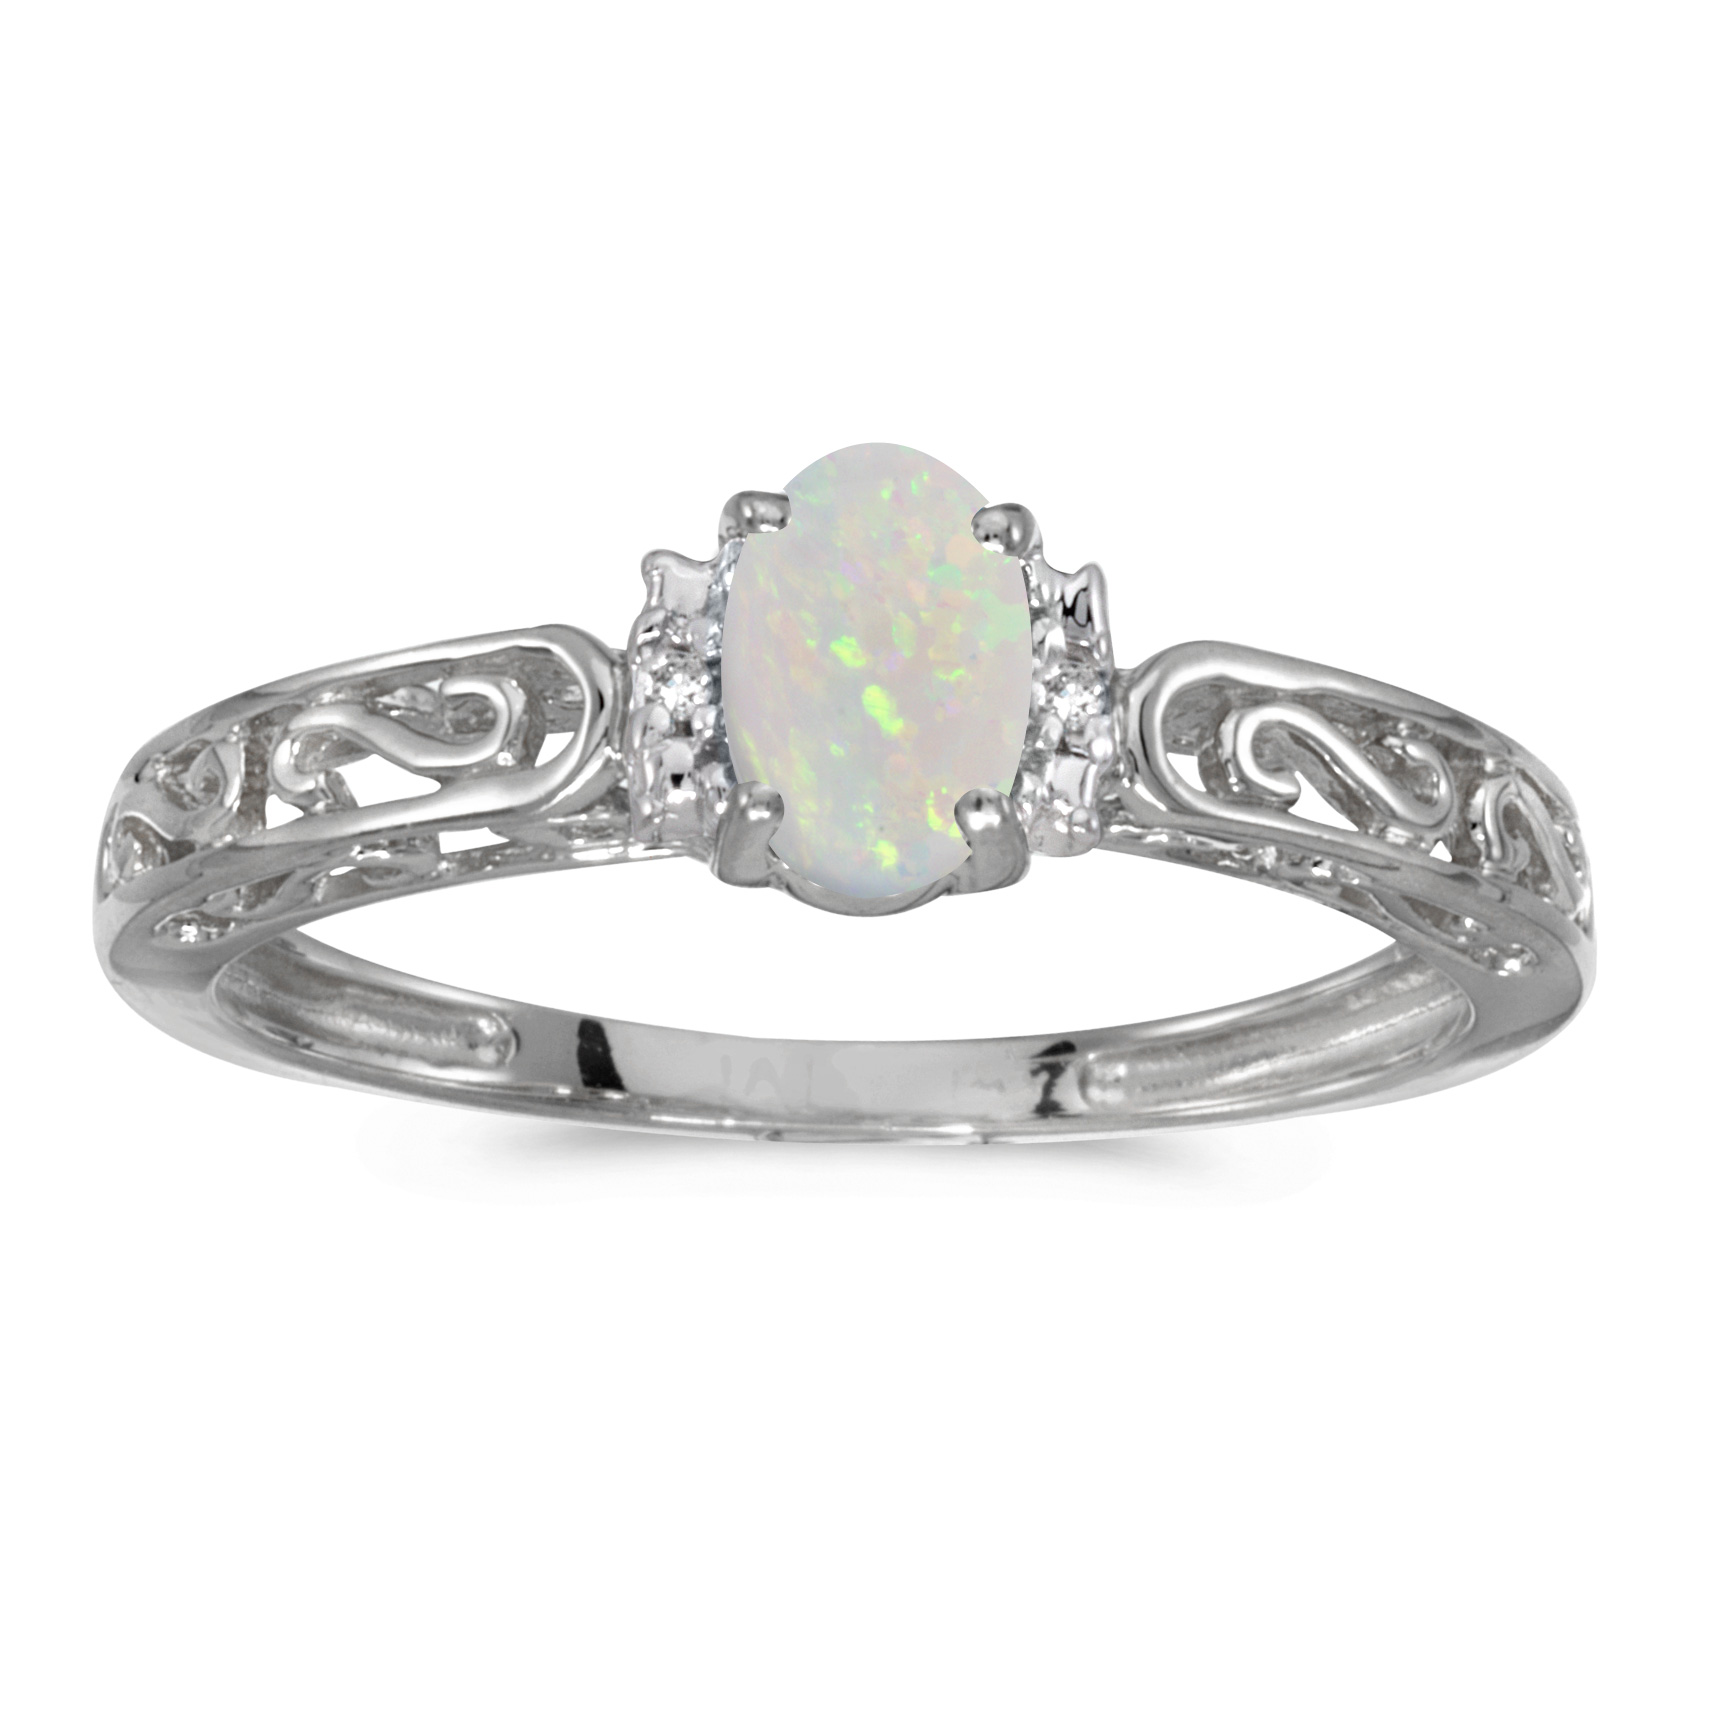 US-RBM-039 Rainbow Moonstone Silver Ring 925 Solid Sterling Silver Jewelry